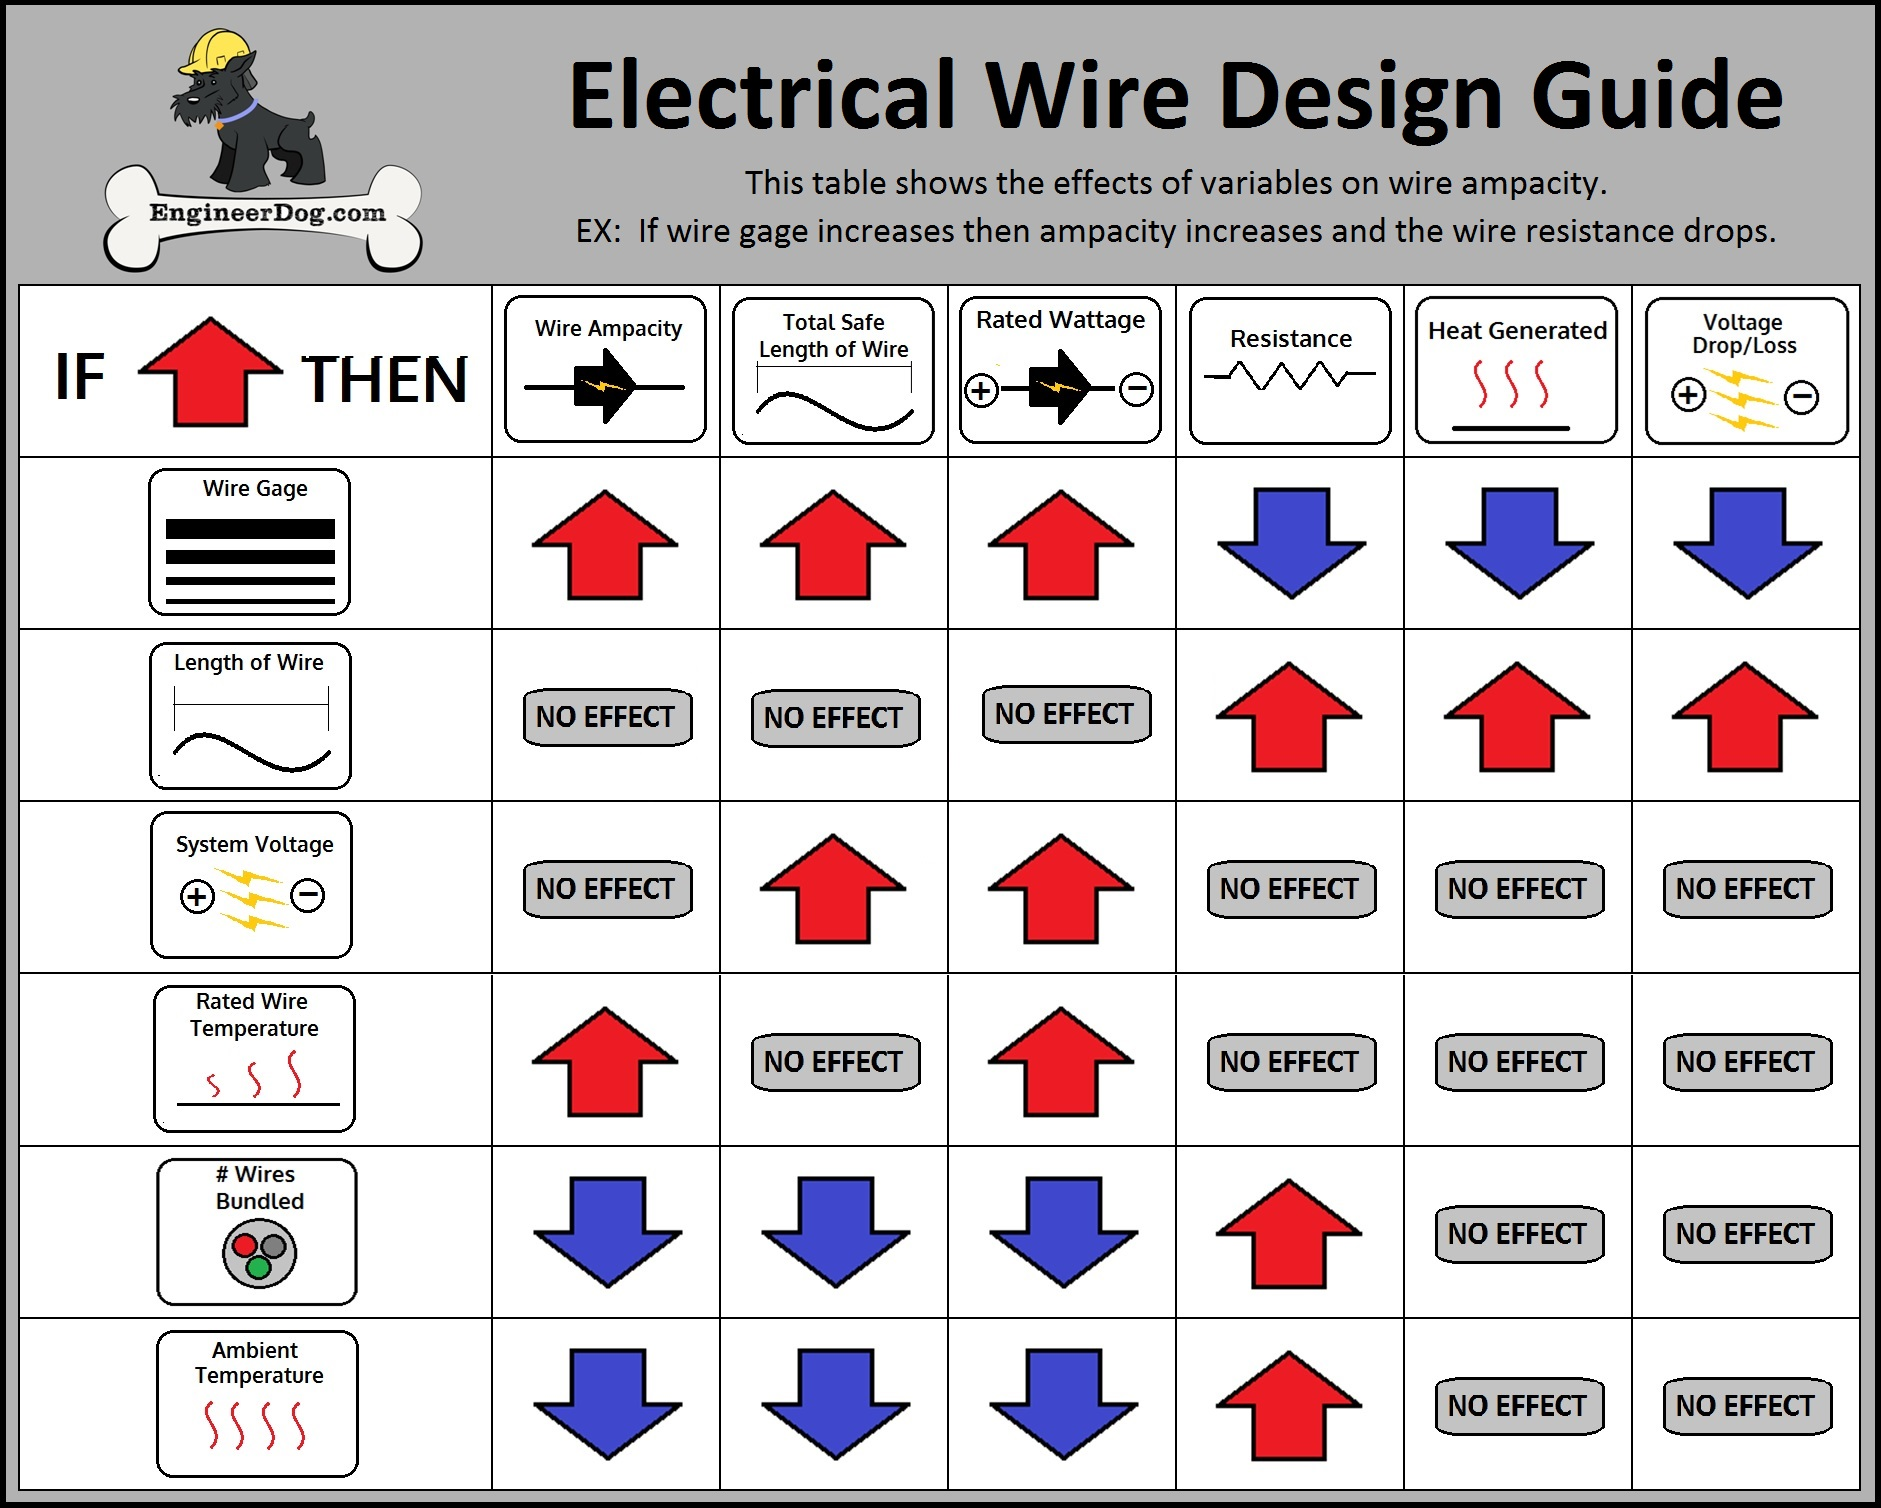 Free electrical wire gauge sizing calculator engineerdog wire sizing guide wire ampacity current carrying capacity greentooth